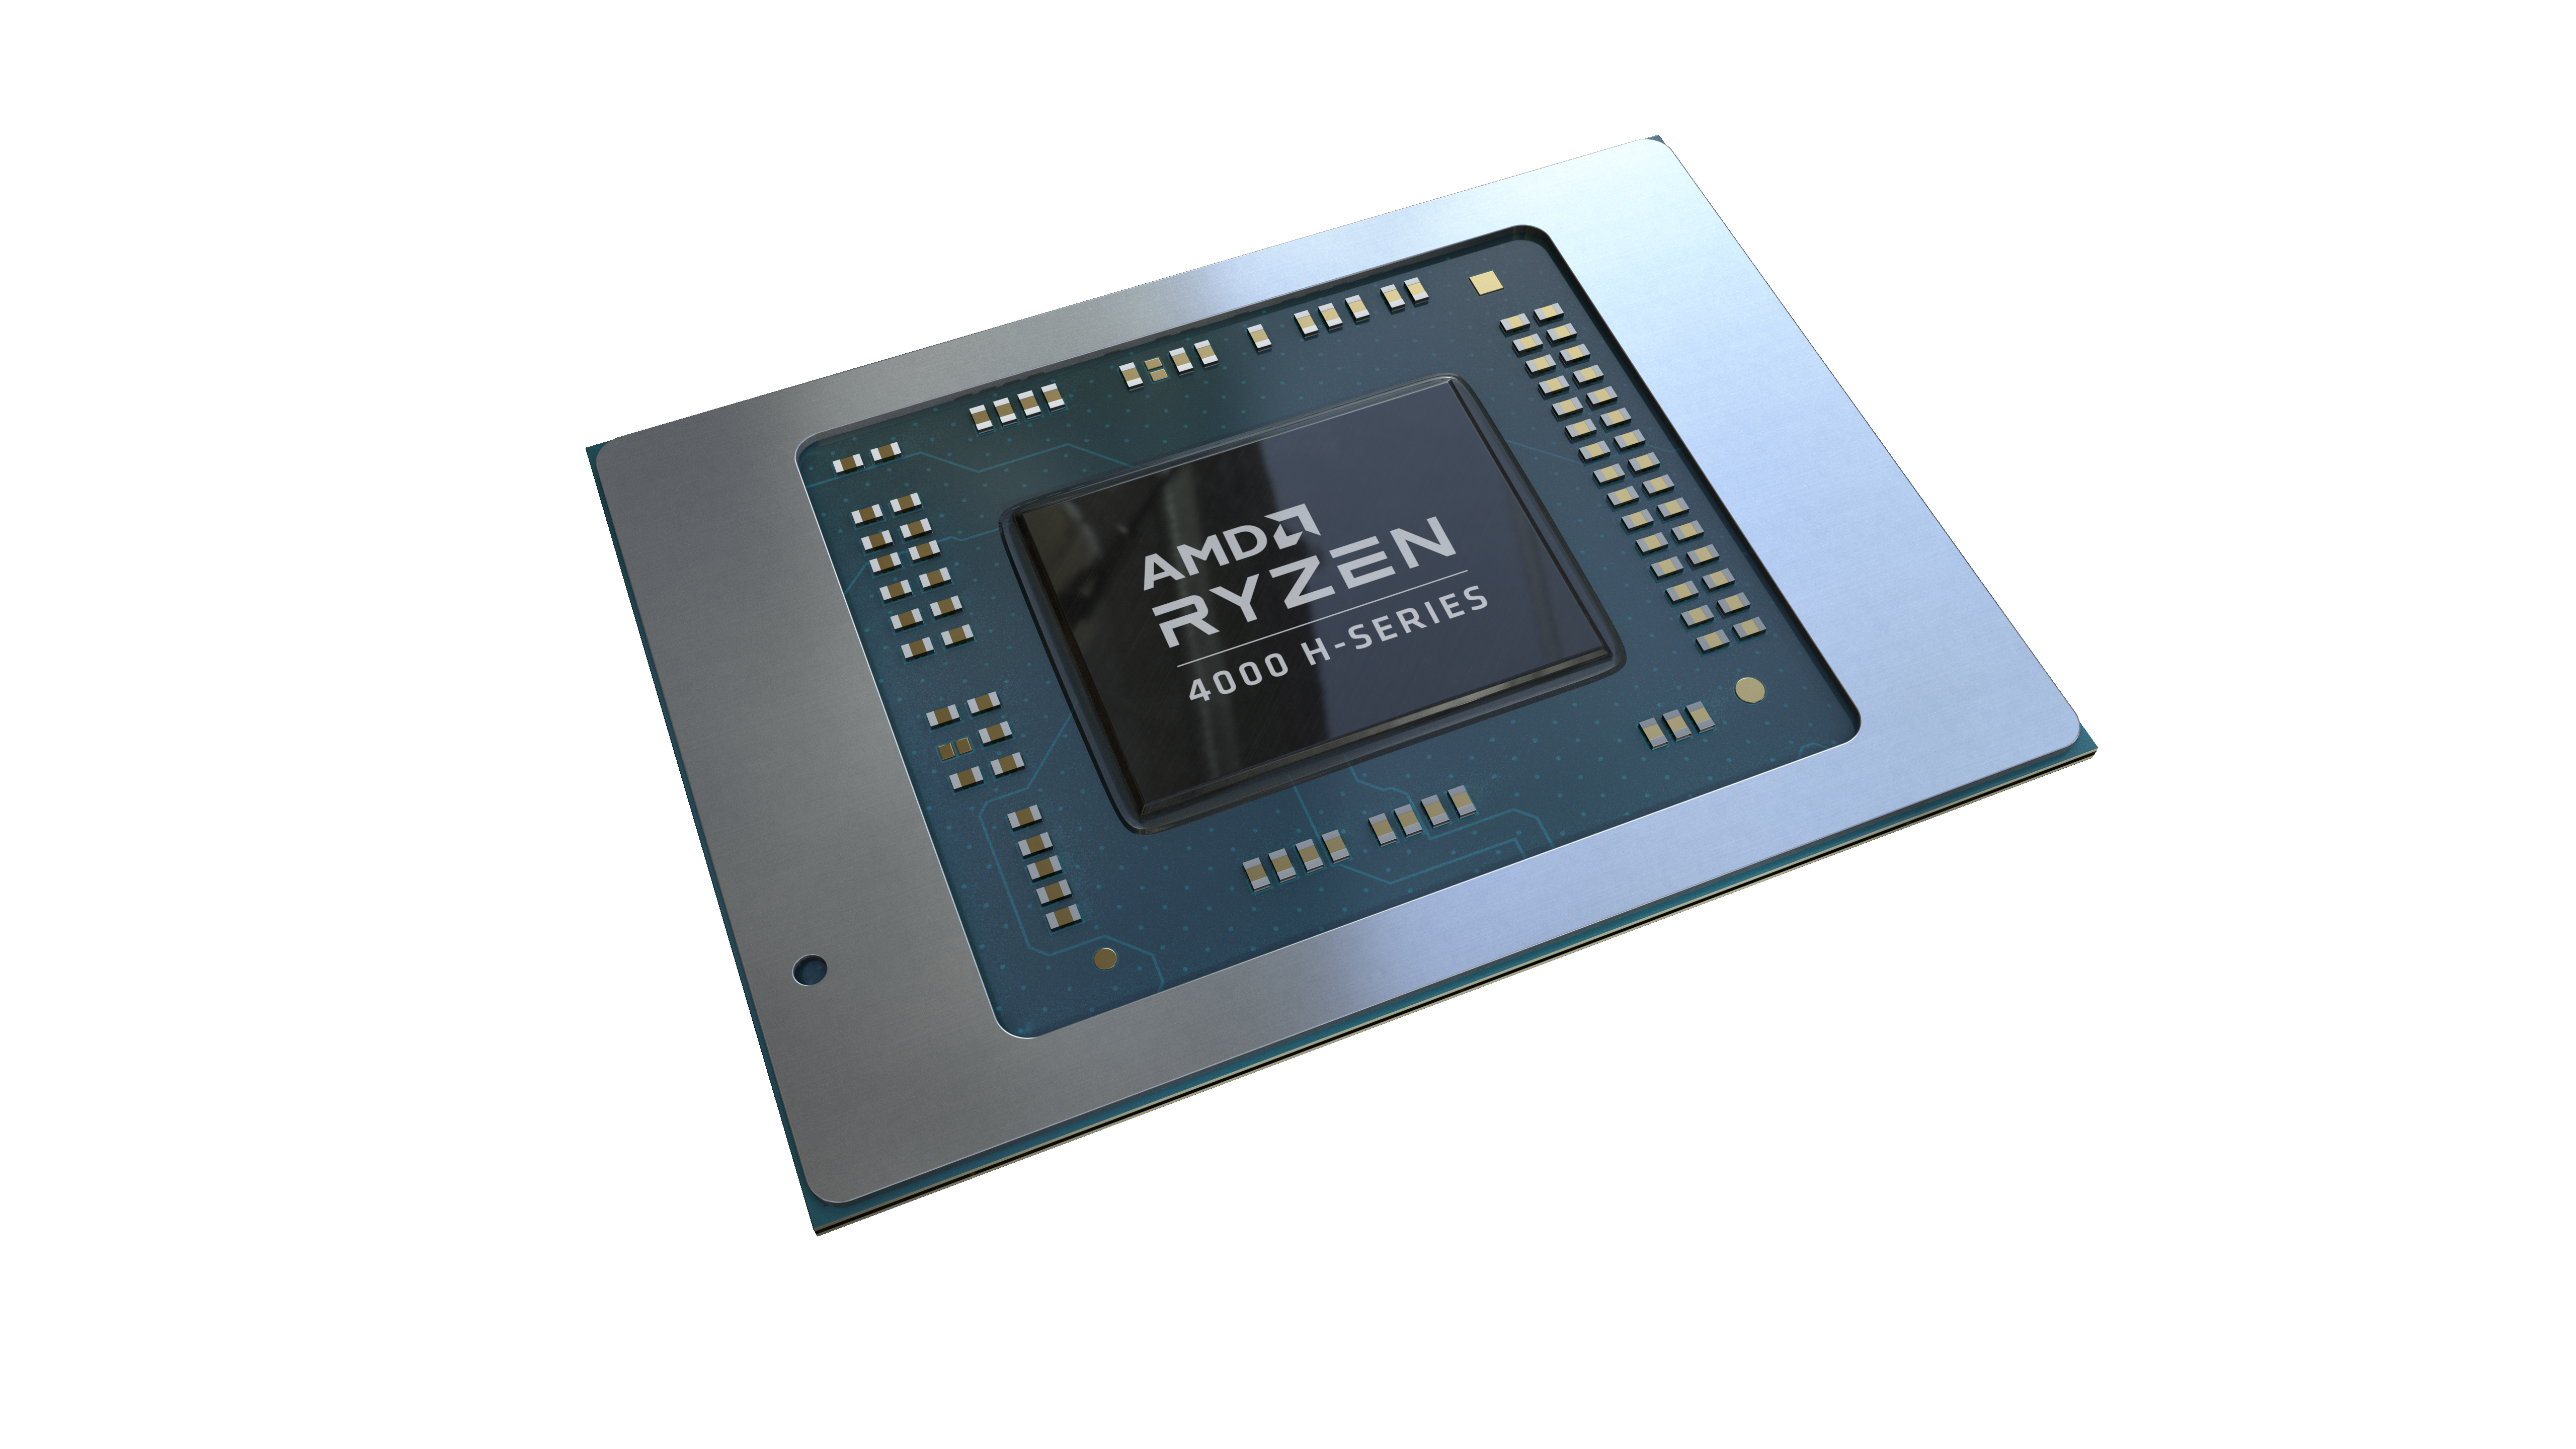 The Ryzen chip